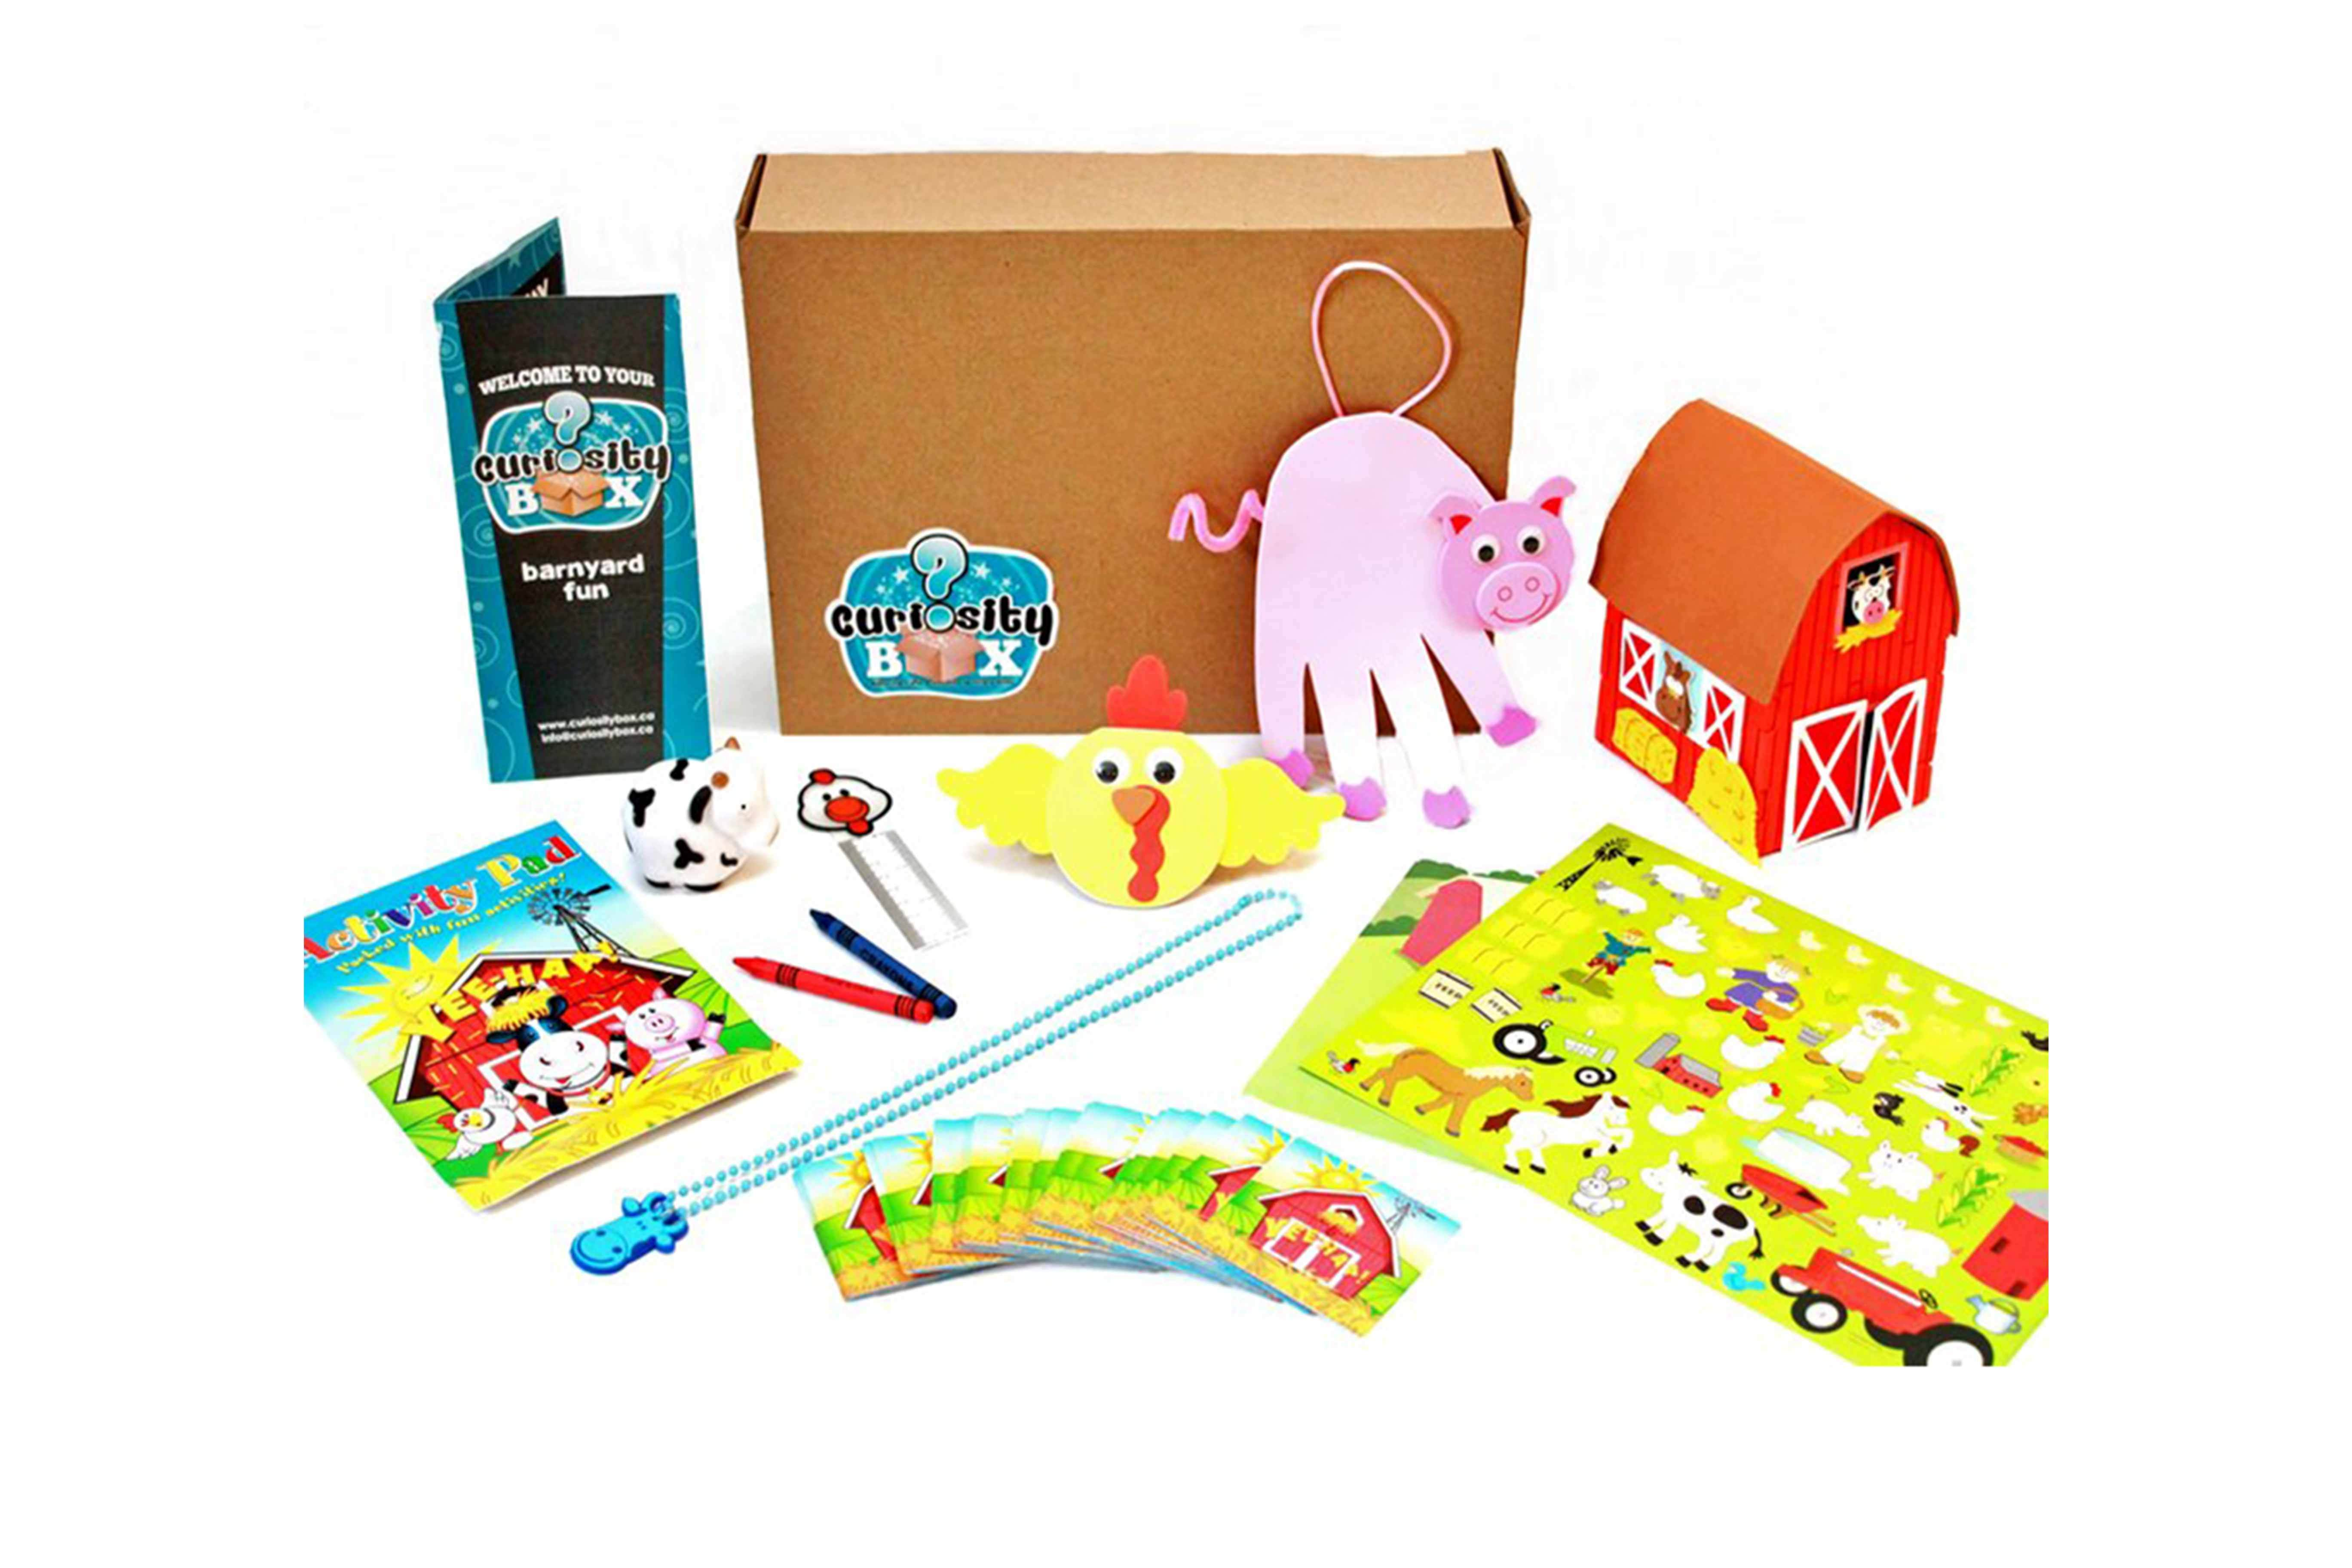 Barnyard Craft Box for Ages 5-7- Curiosity-Box-Craft-and-Educational-Boxes-Kids-Monthly-Subscription-Box